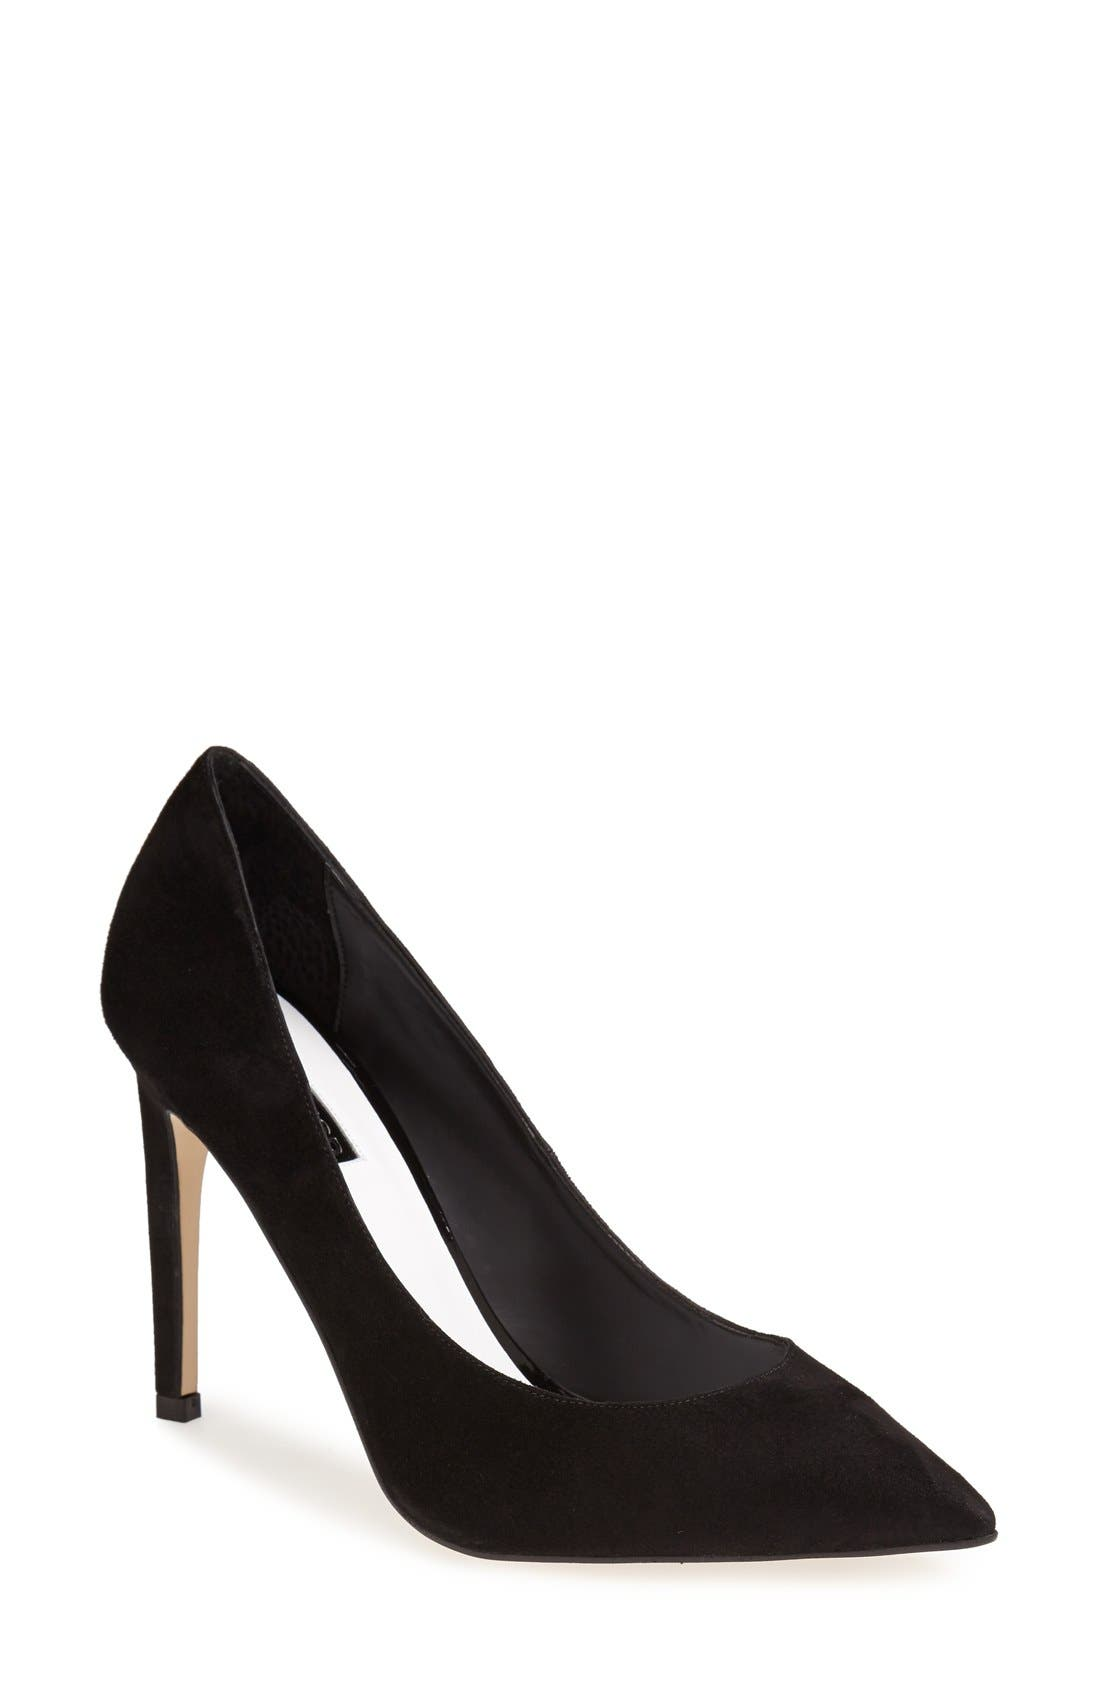 Main Image - Topshop 'Glory' Pointy Toe Suede Pump (Women)